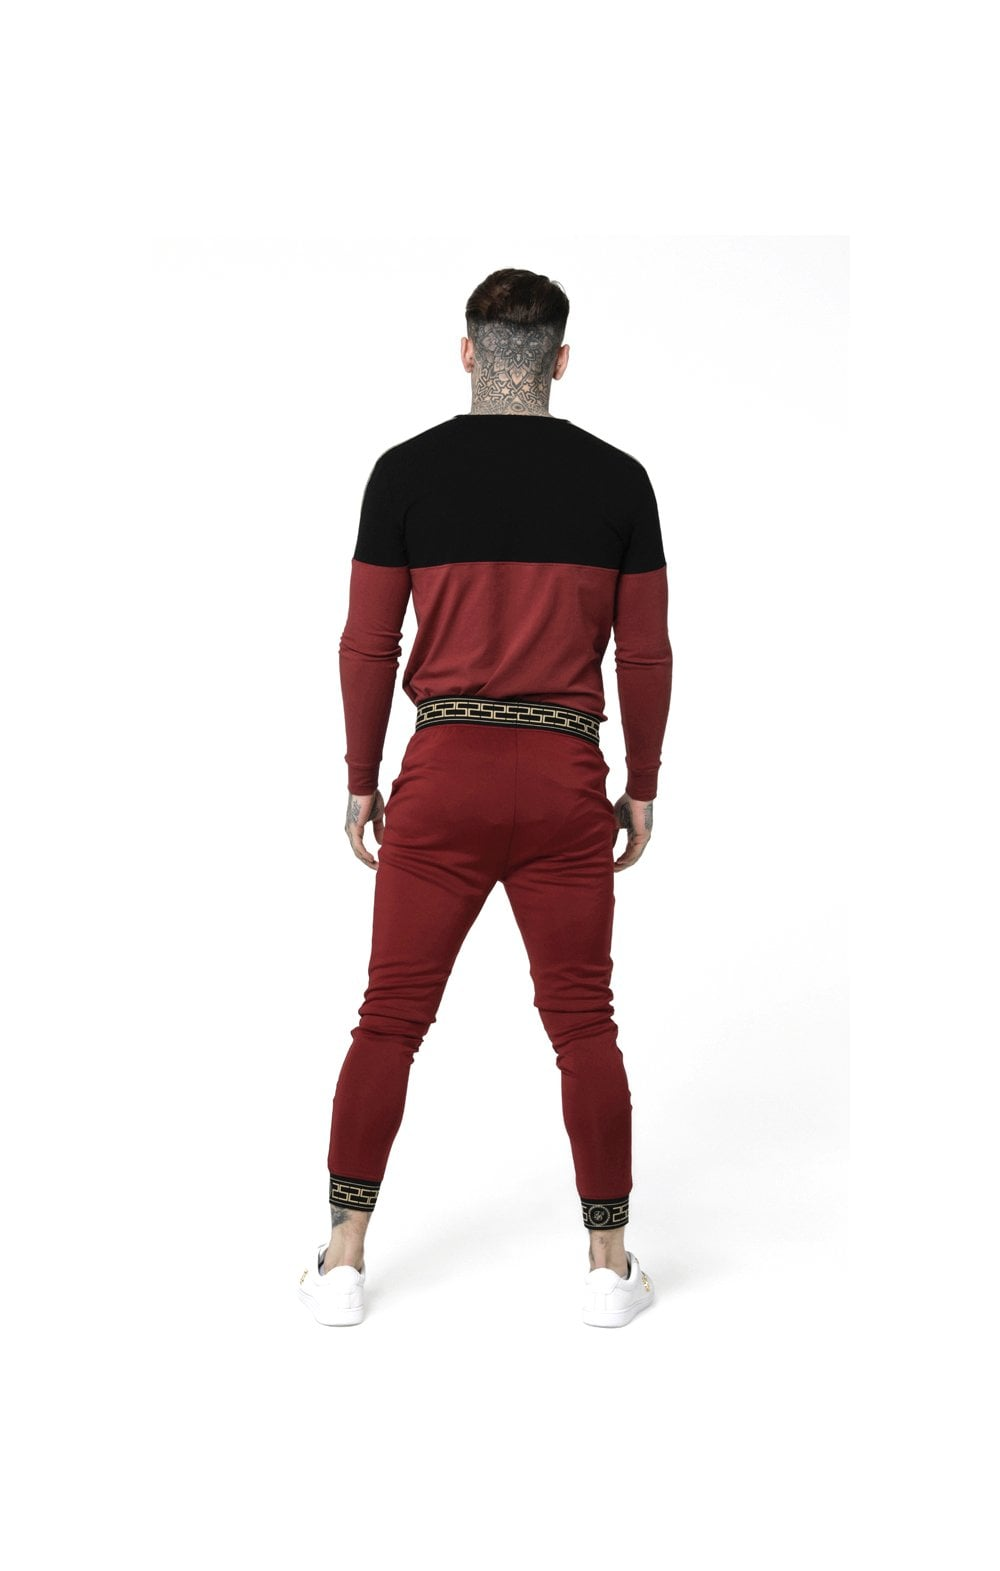 Load image into Gallery viewer, SikSilk L/S Cartel Cut & Sew Half Tape Gym Tee - Black & Red (5)